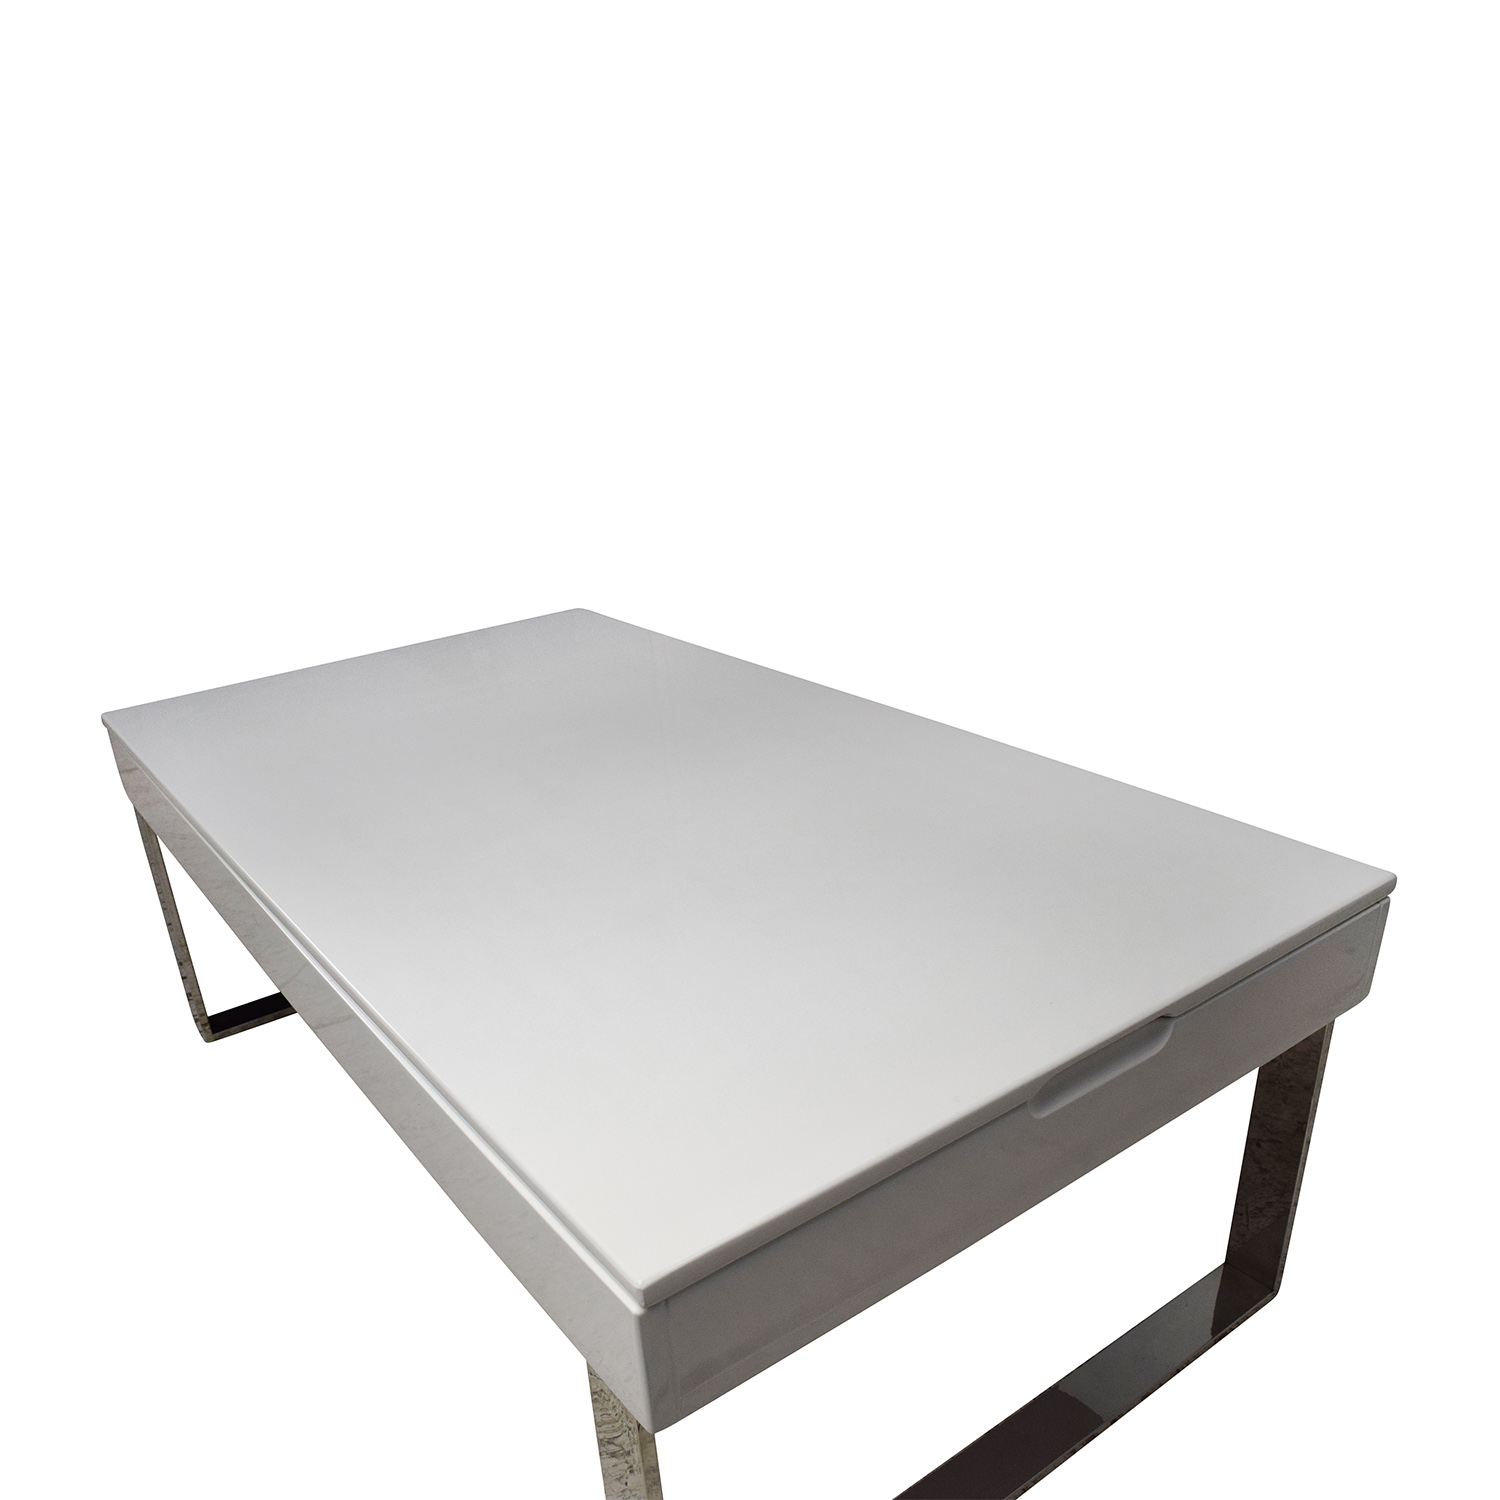 White Lift Top Coffee Tables: Halmstad Modern White Lift-Top Coffee Table / Tables